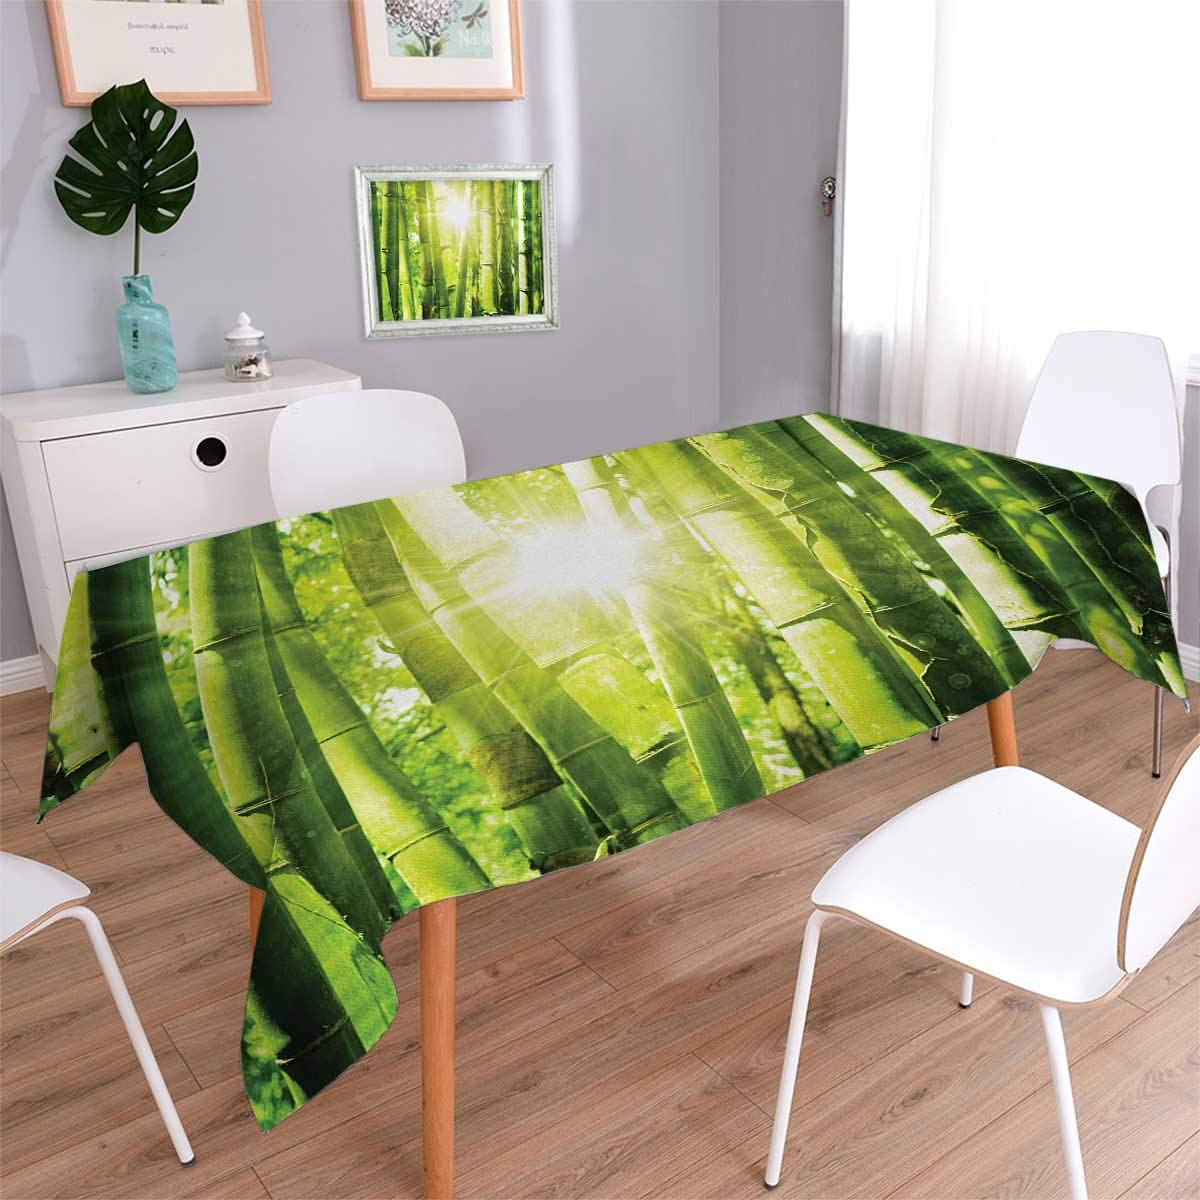 Anmaseven Asian Rectangle Customized Tablecloth Asian Bamboo Forest with Morning Sunlight Sun Beams Through Trees Jungle Scene Stain Resistant Wrinkle Tablecloth Lime Green Yellow Size: W70 x L104